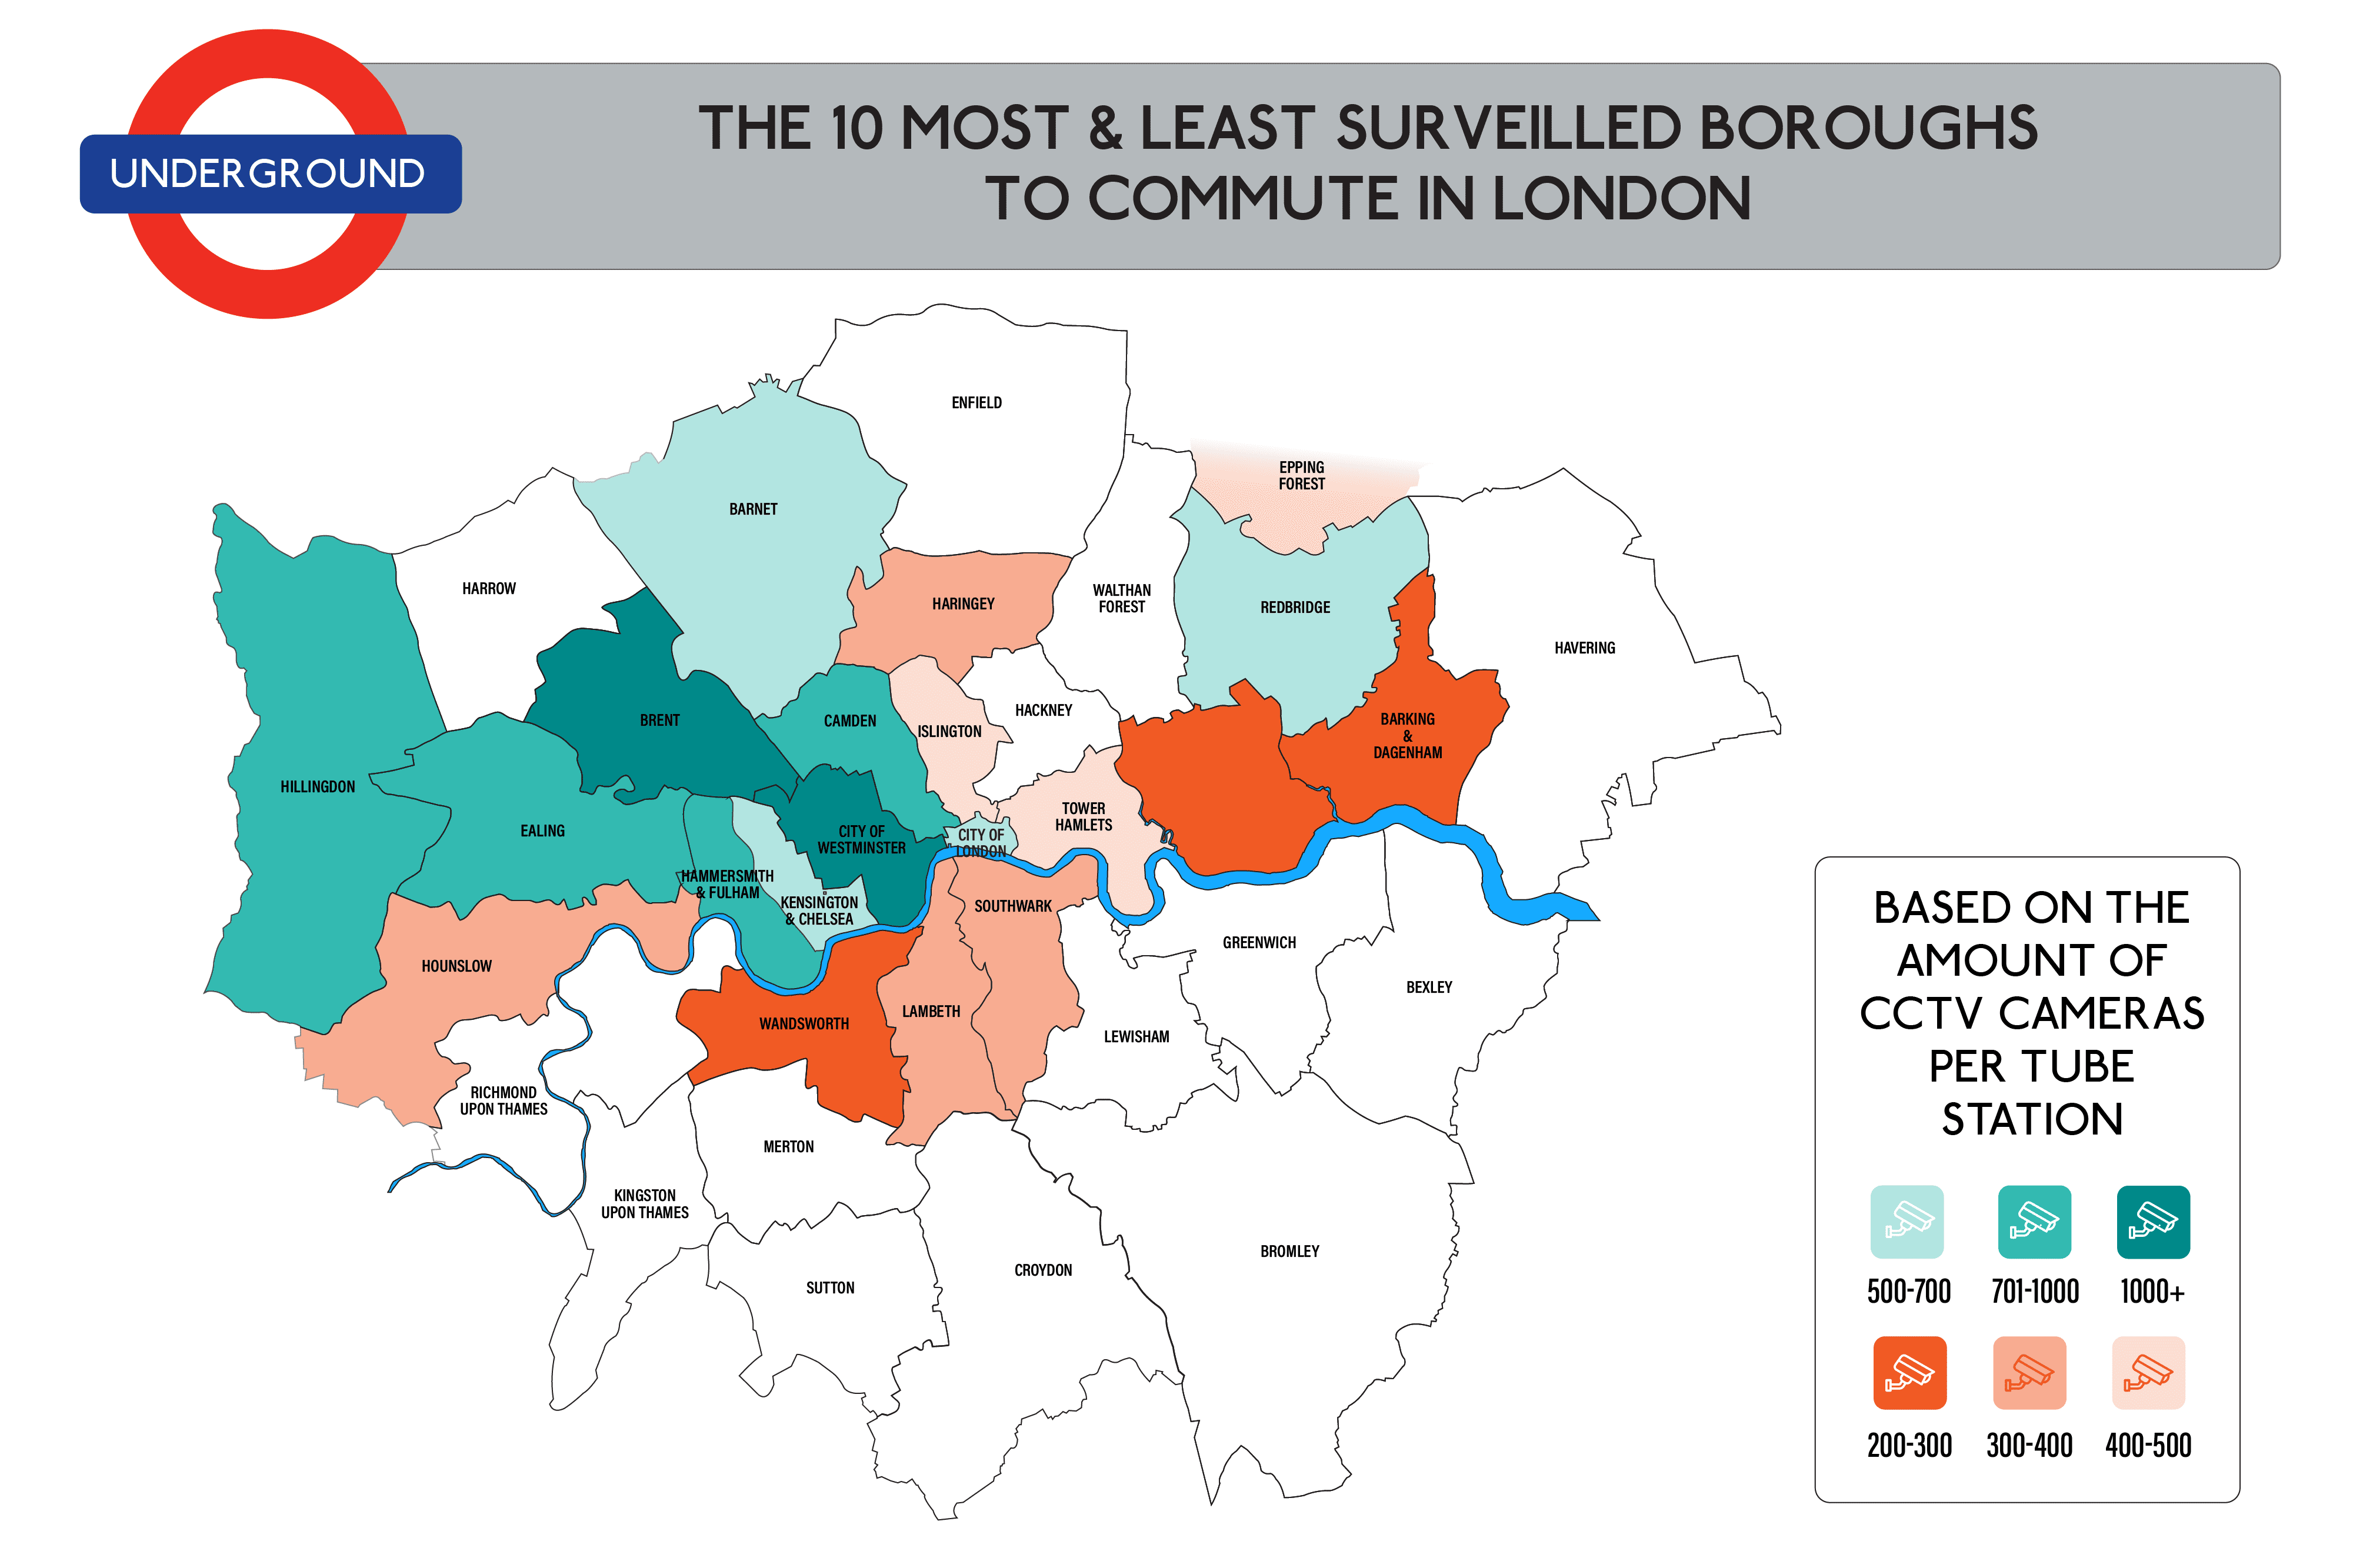 CCTV uncovered: The most-surveilled commuter boroughs in London